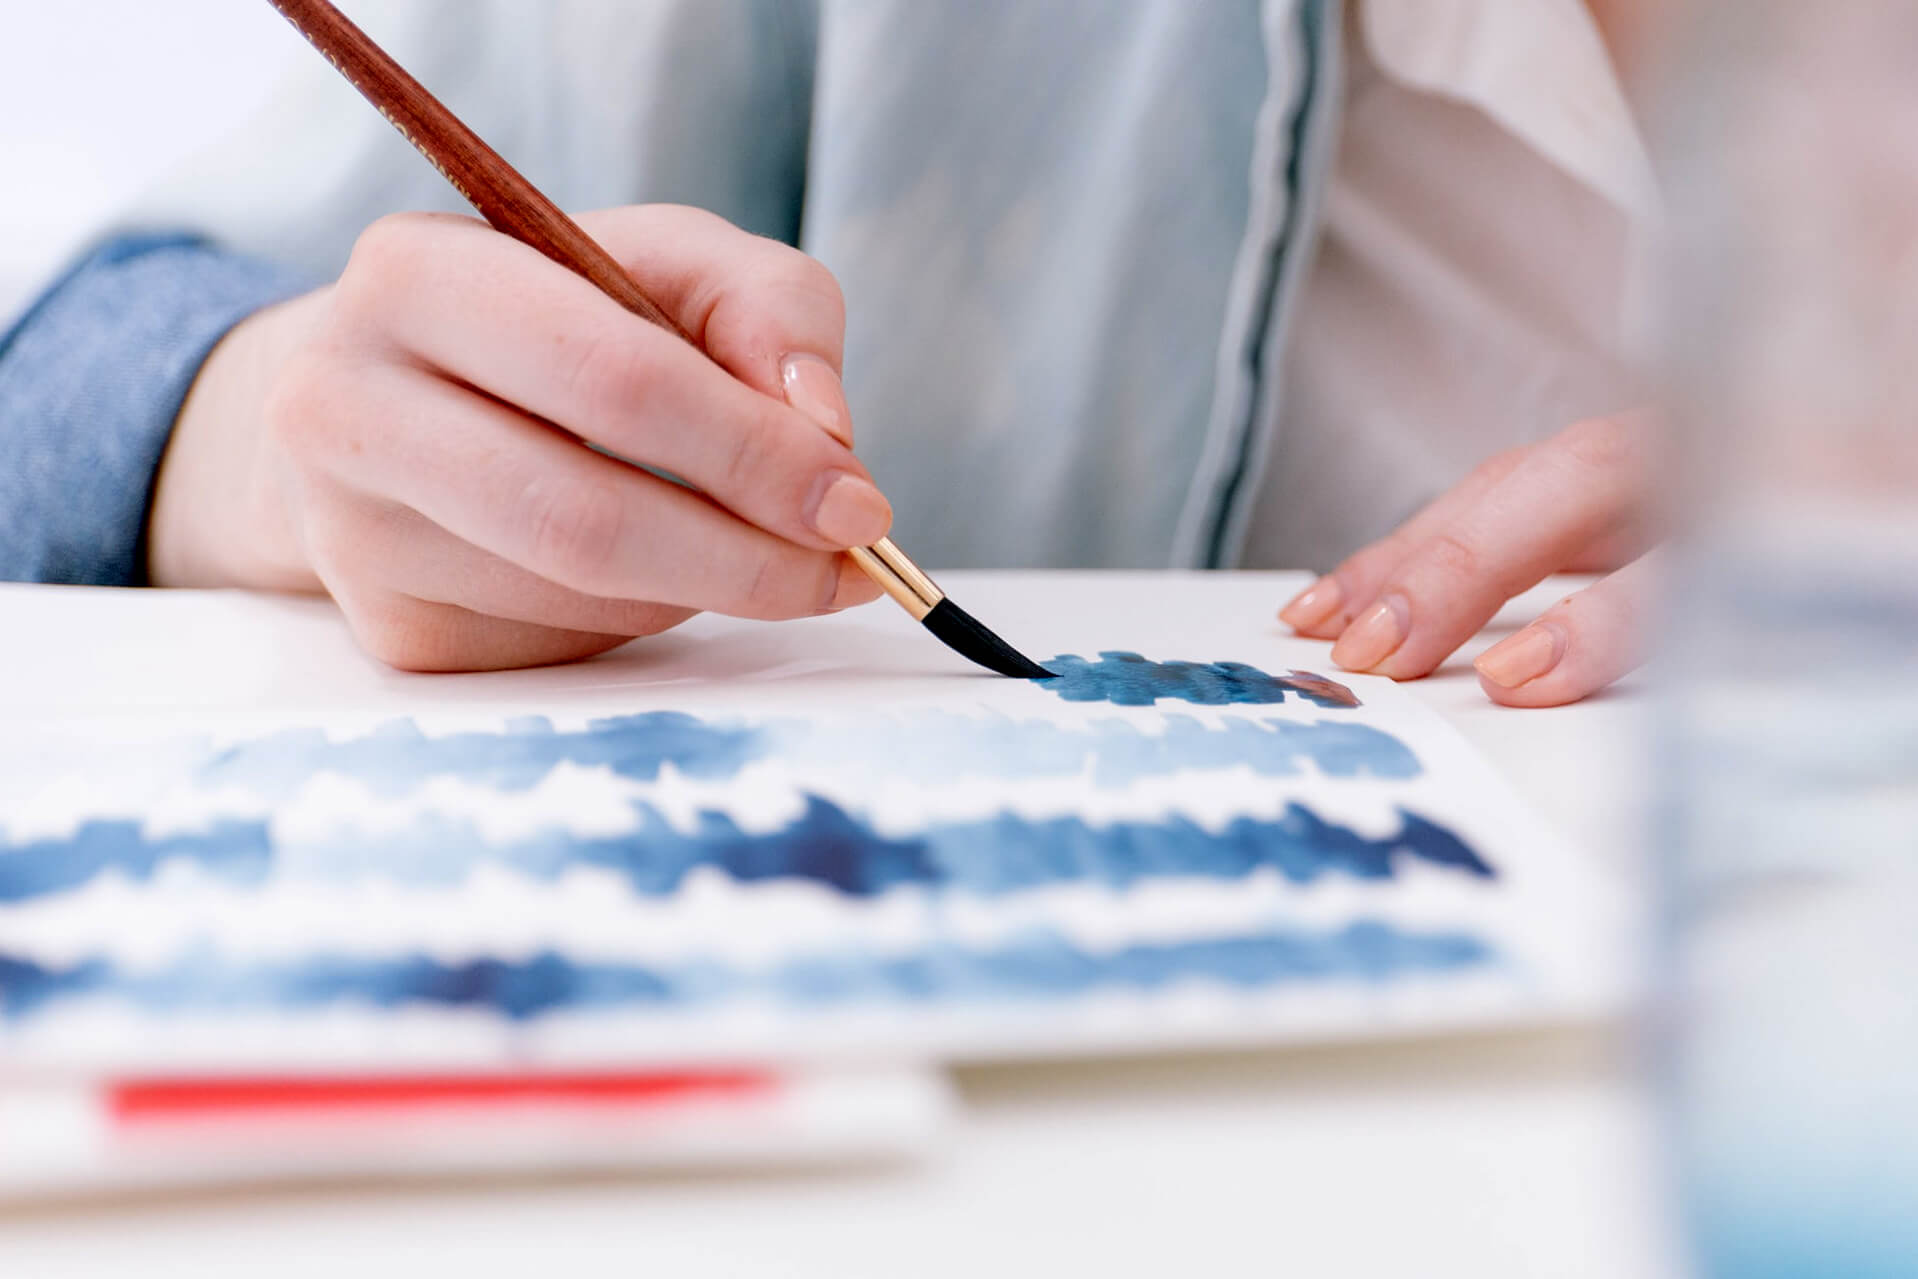 a painter making gradients with watercolour